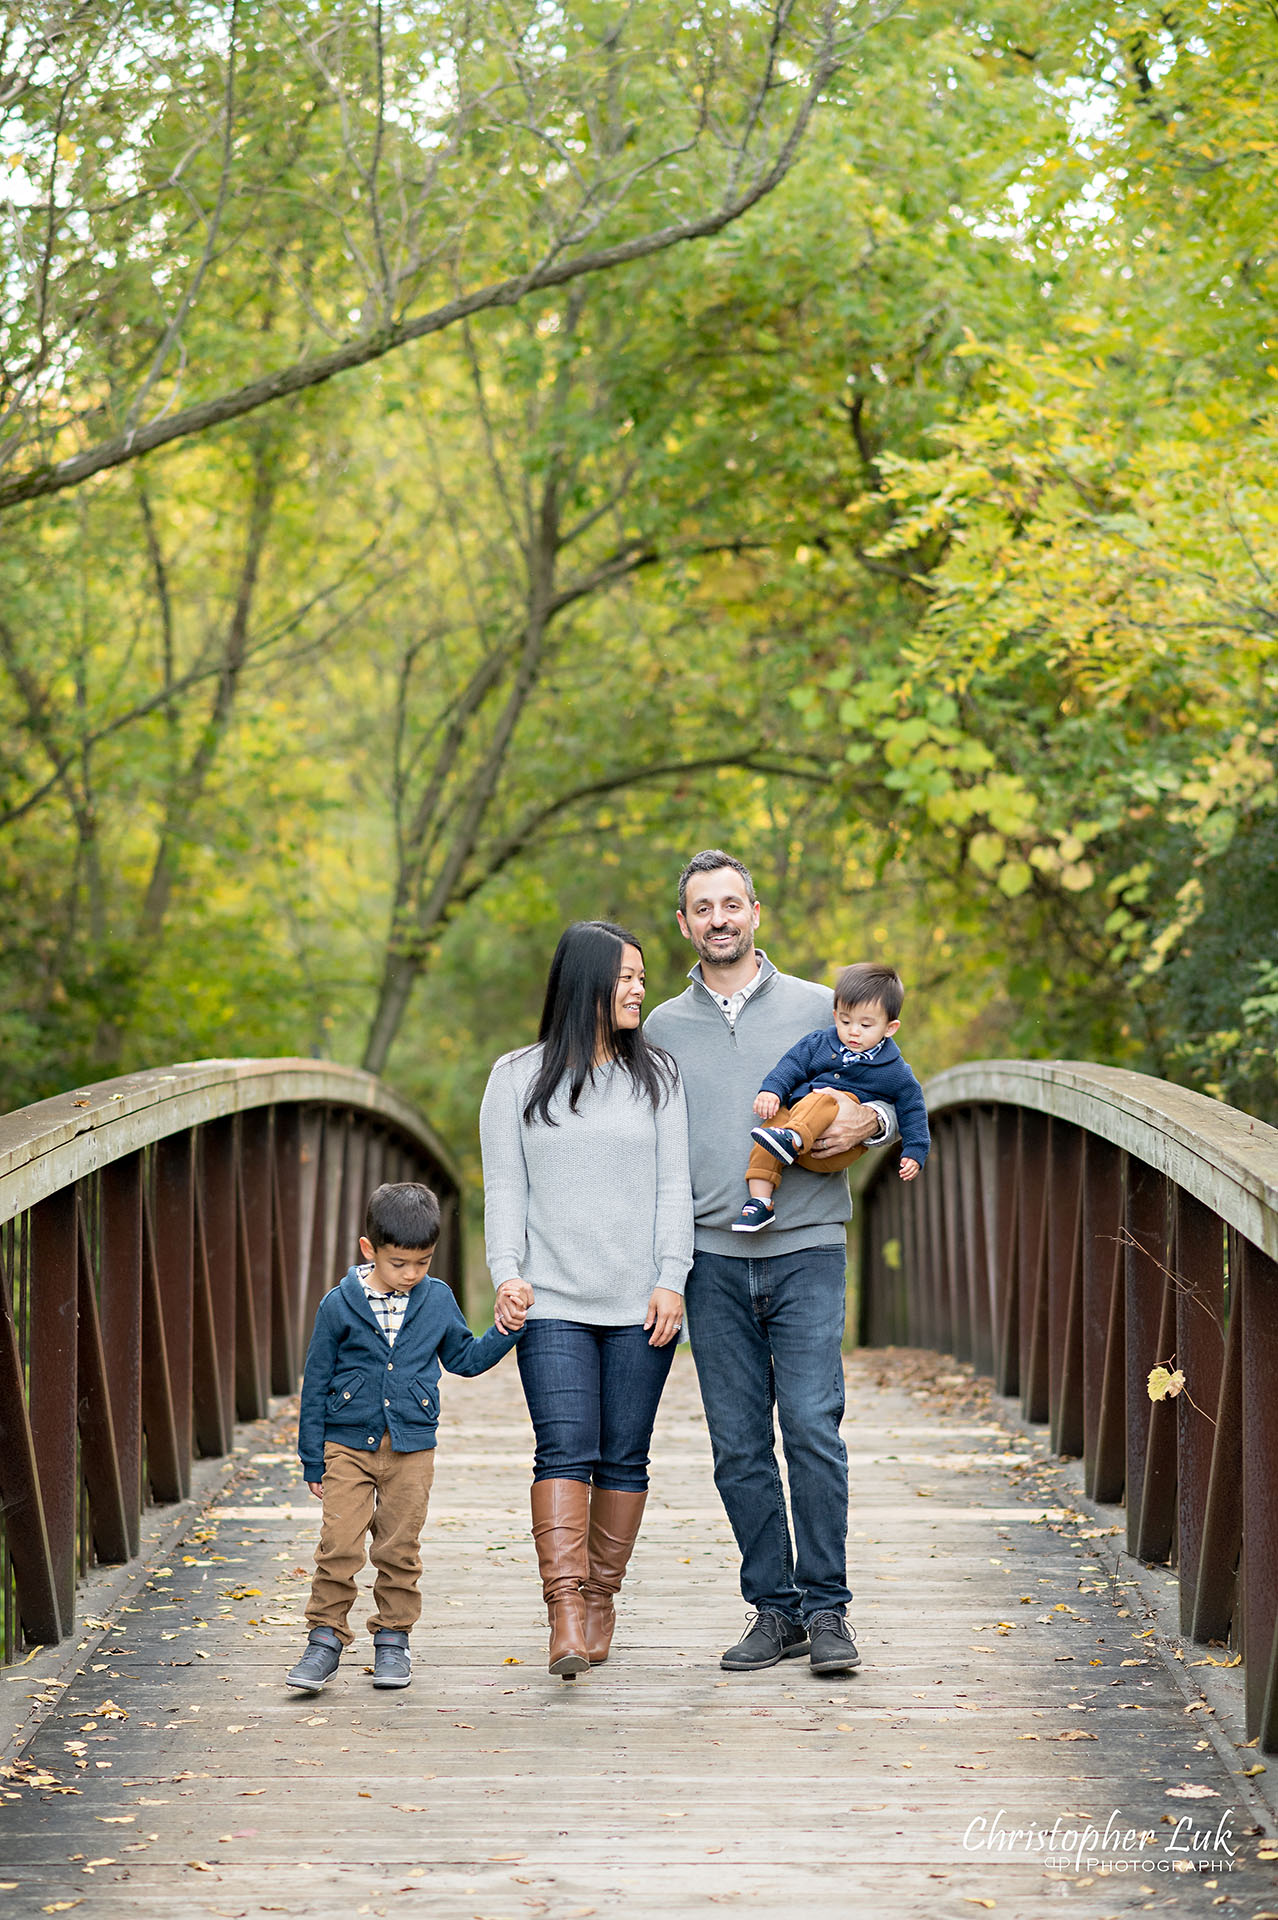 Christopher Luk Family Photographer Toronto Markham Unionville Autumn Fall Leaves Natural Candid Photojournalistic Sons Brothers Baby Boys Bridge Father Dad Mother Mom Motherhood Fatherhood Holding Hands Walking Together